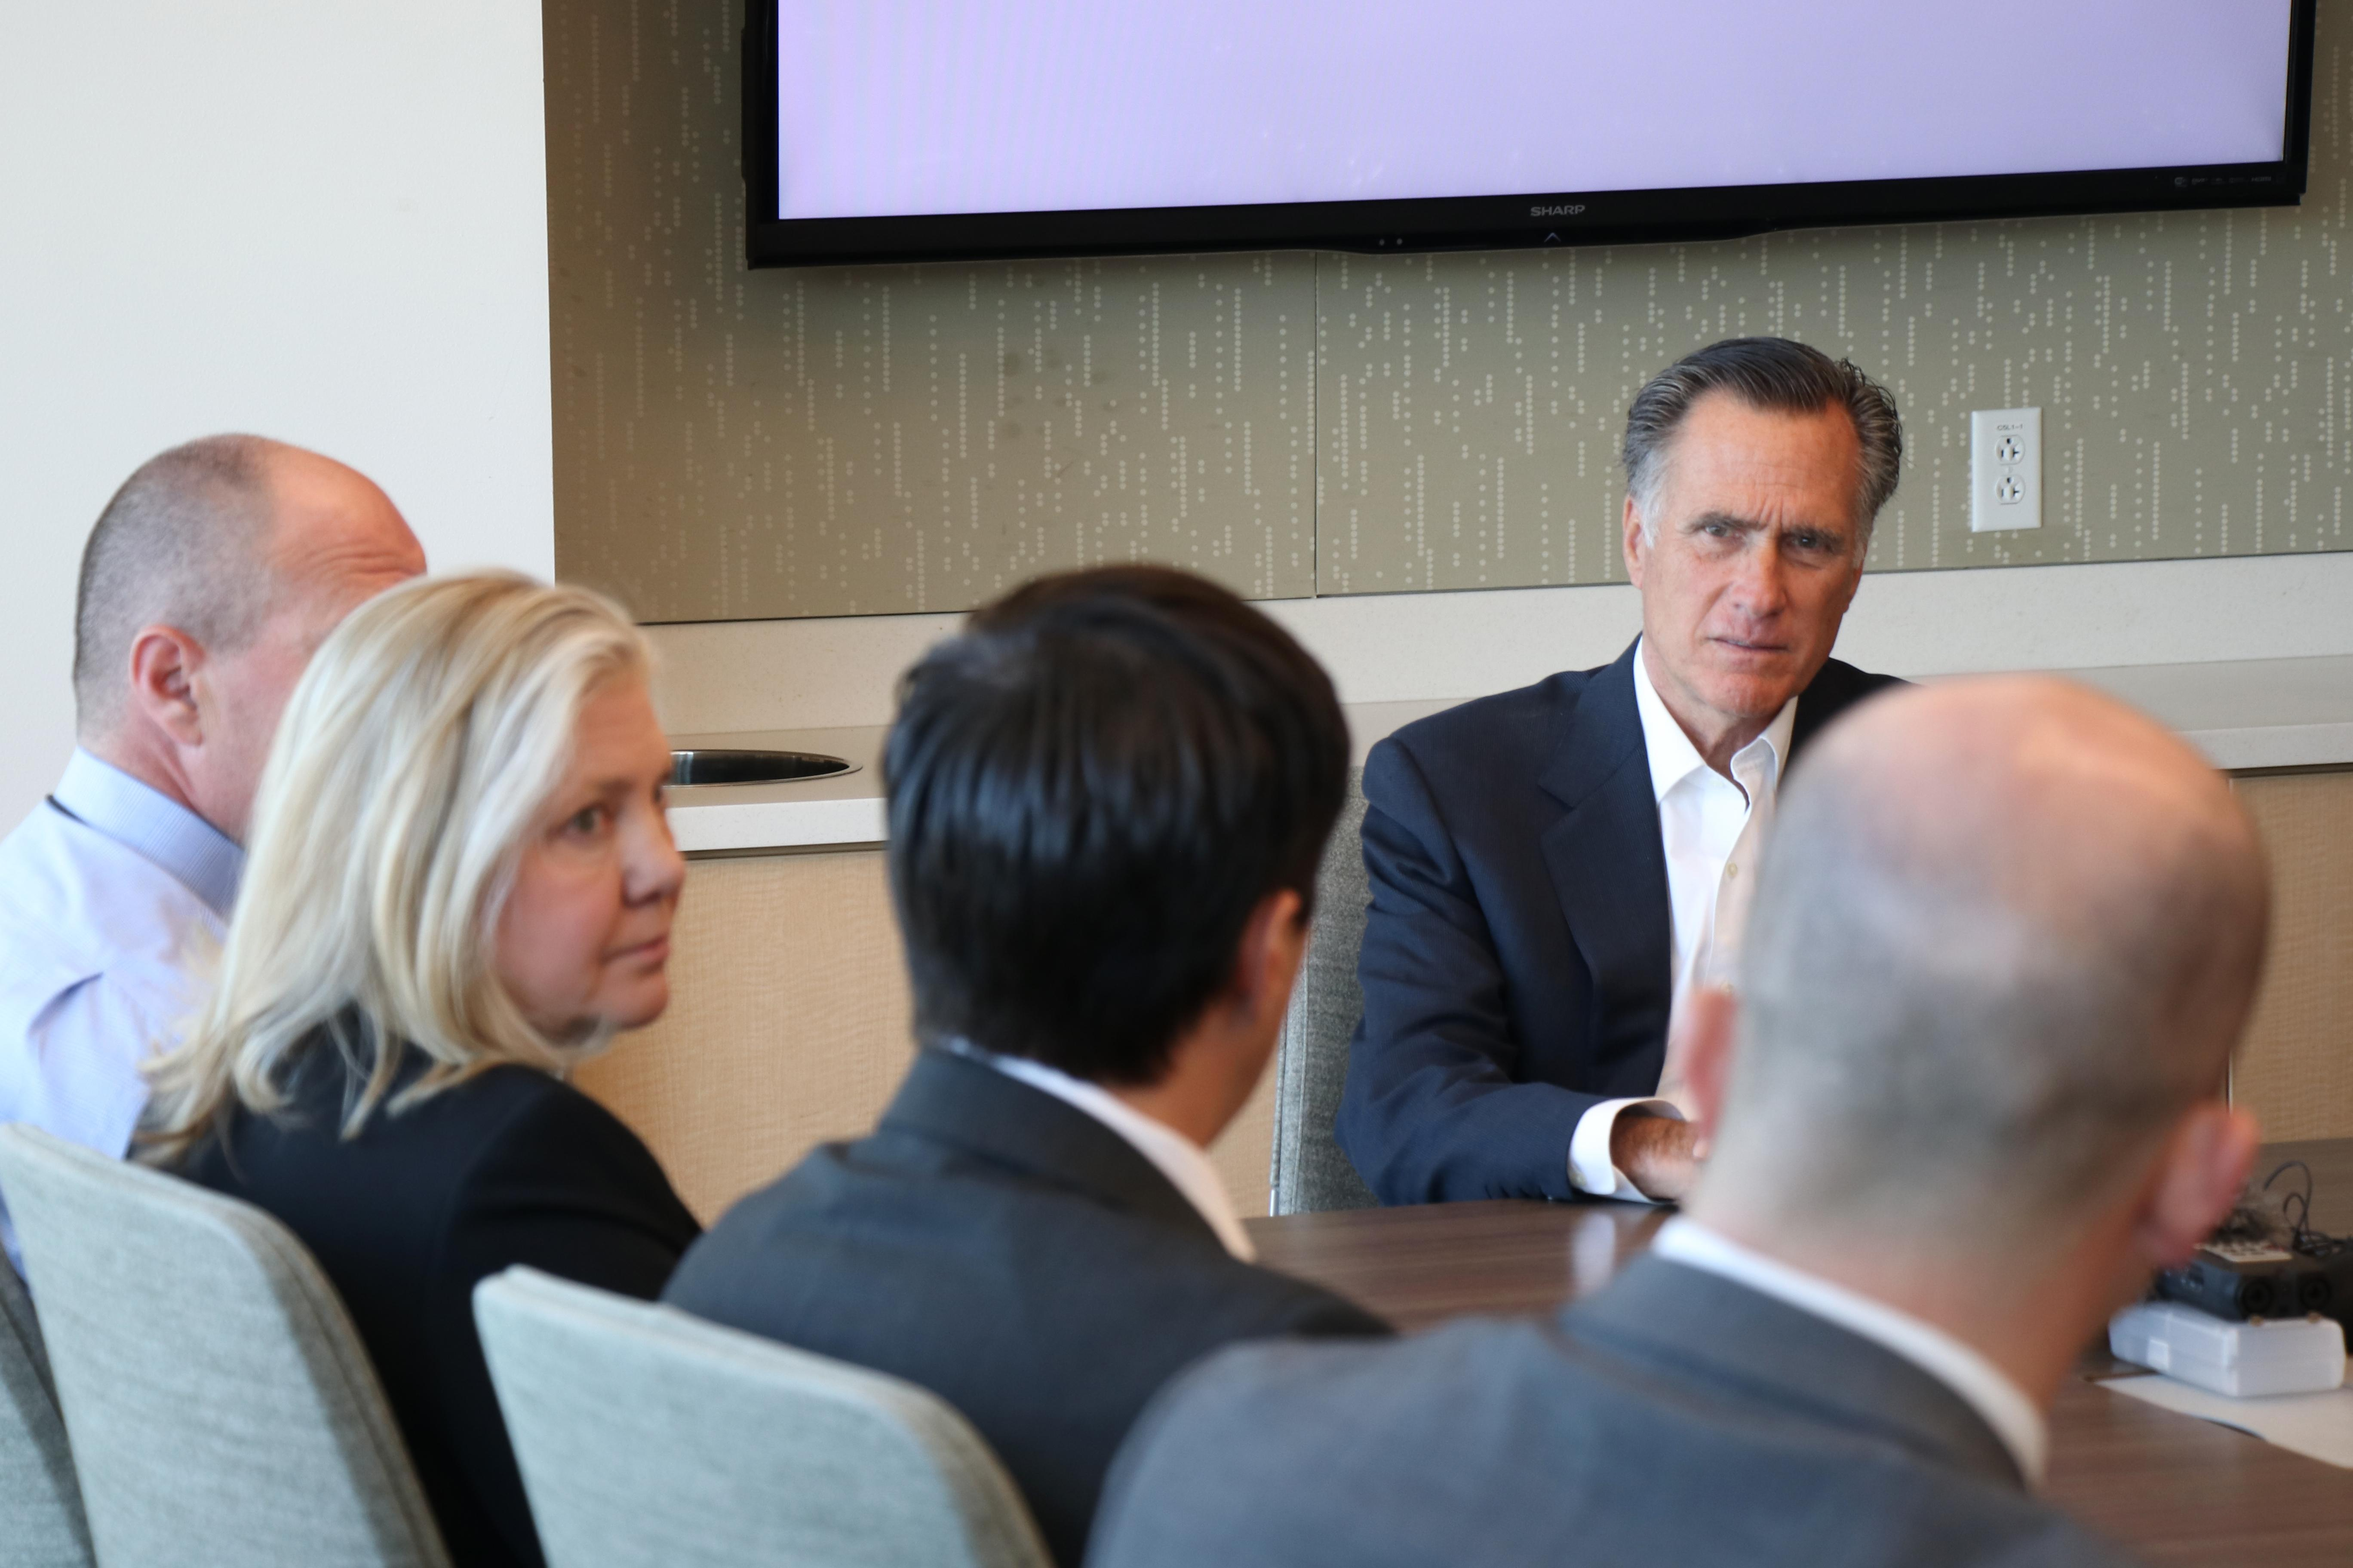 Sen. Mitt Romney spoke with Utah experts Thursday to discuss vaping illness and anti-vaping efforts. (Photo: Larry D. Curtis / KUTV)